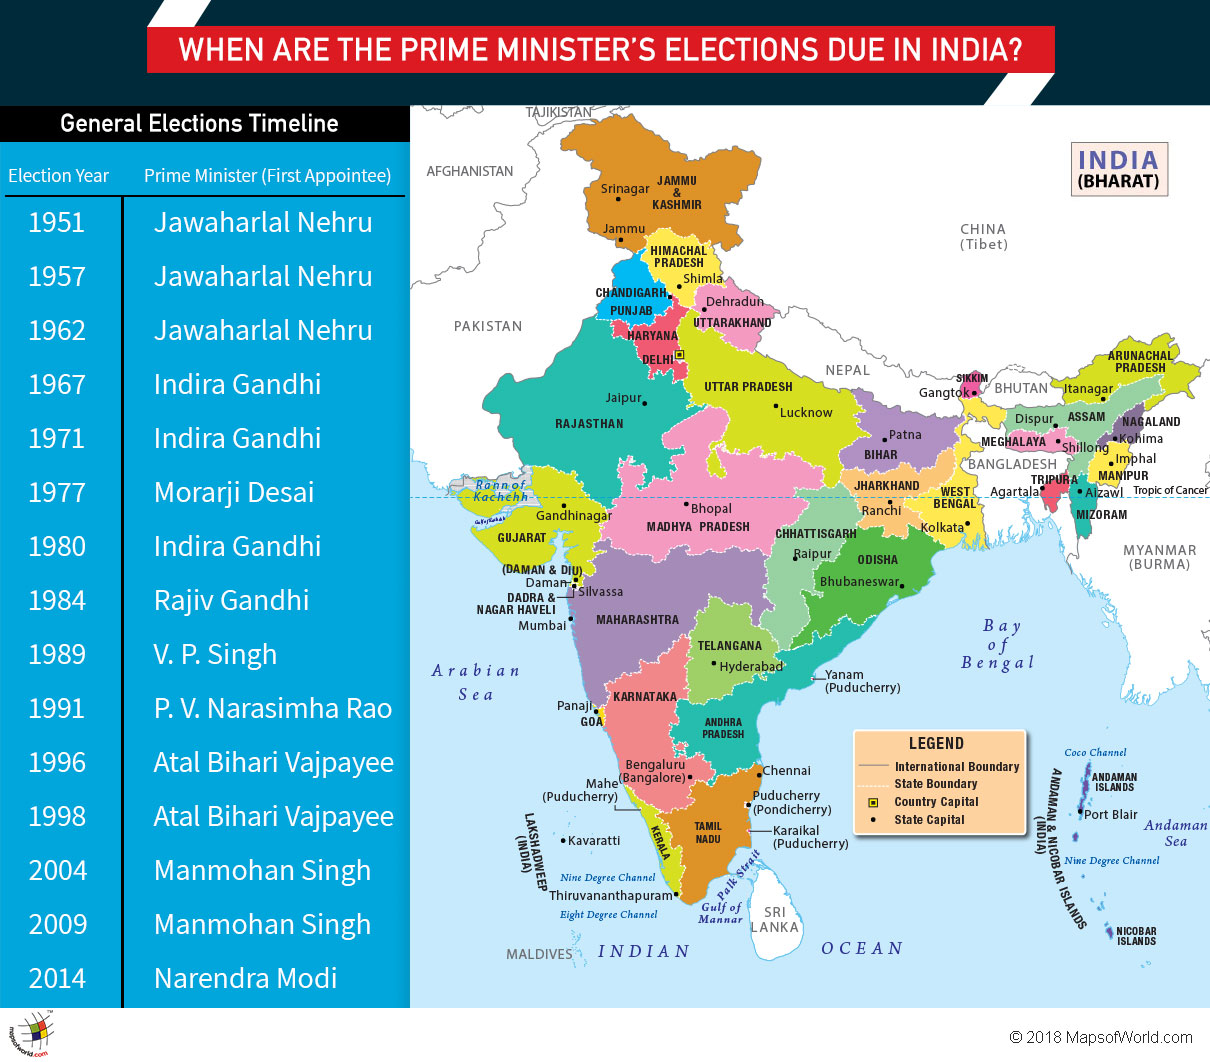 Map of India with years when different Prime Ministers assumed office